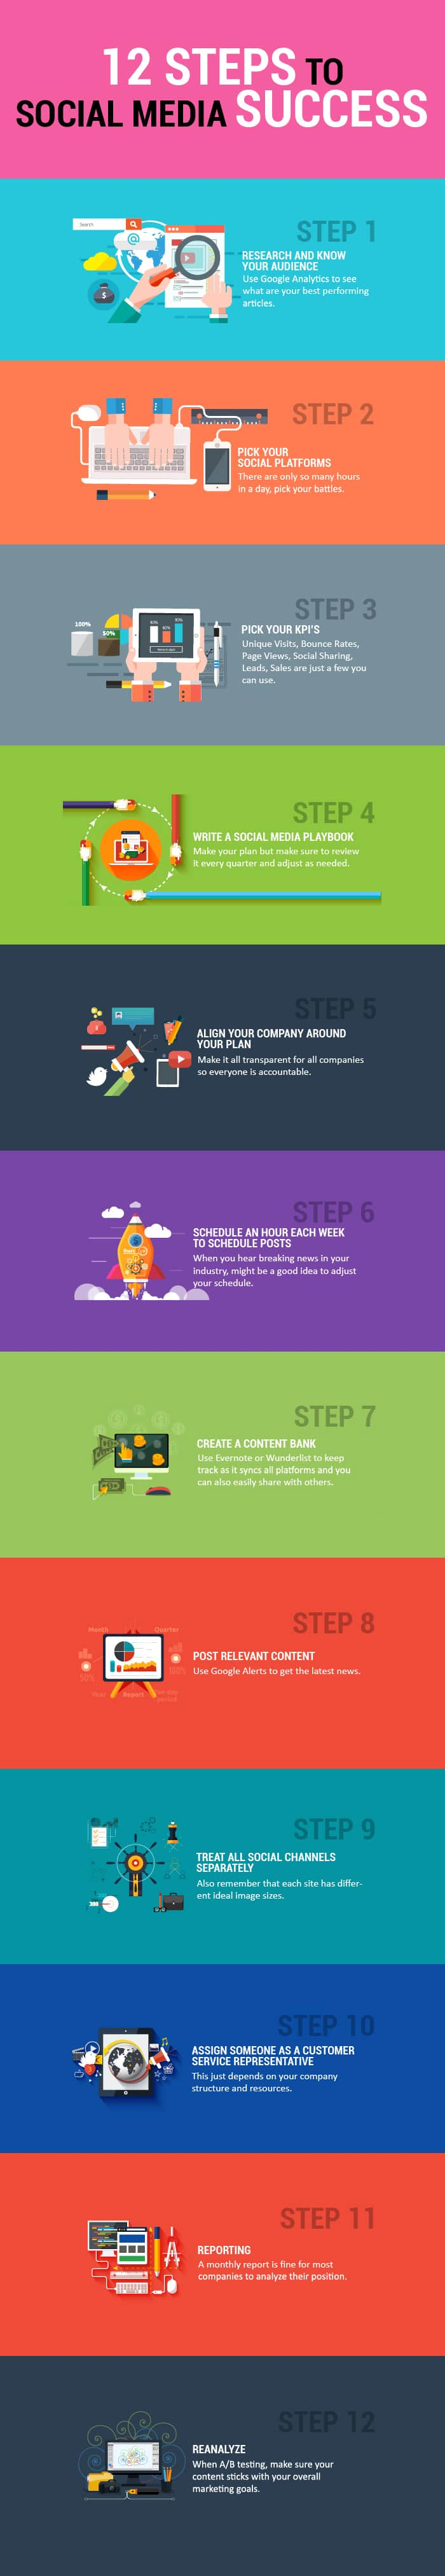 Infographic: Social Media Marketing Success